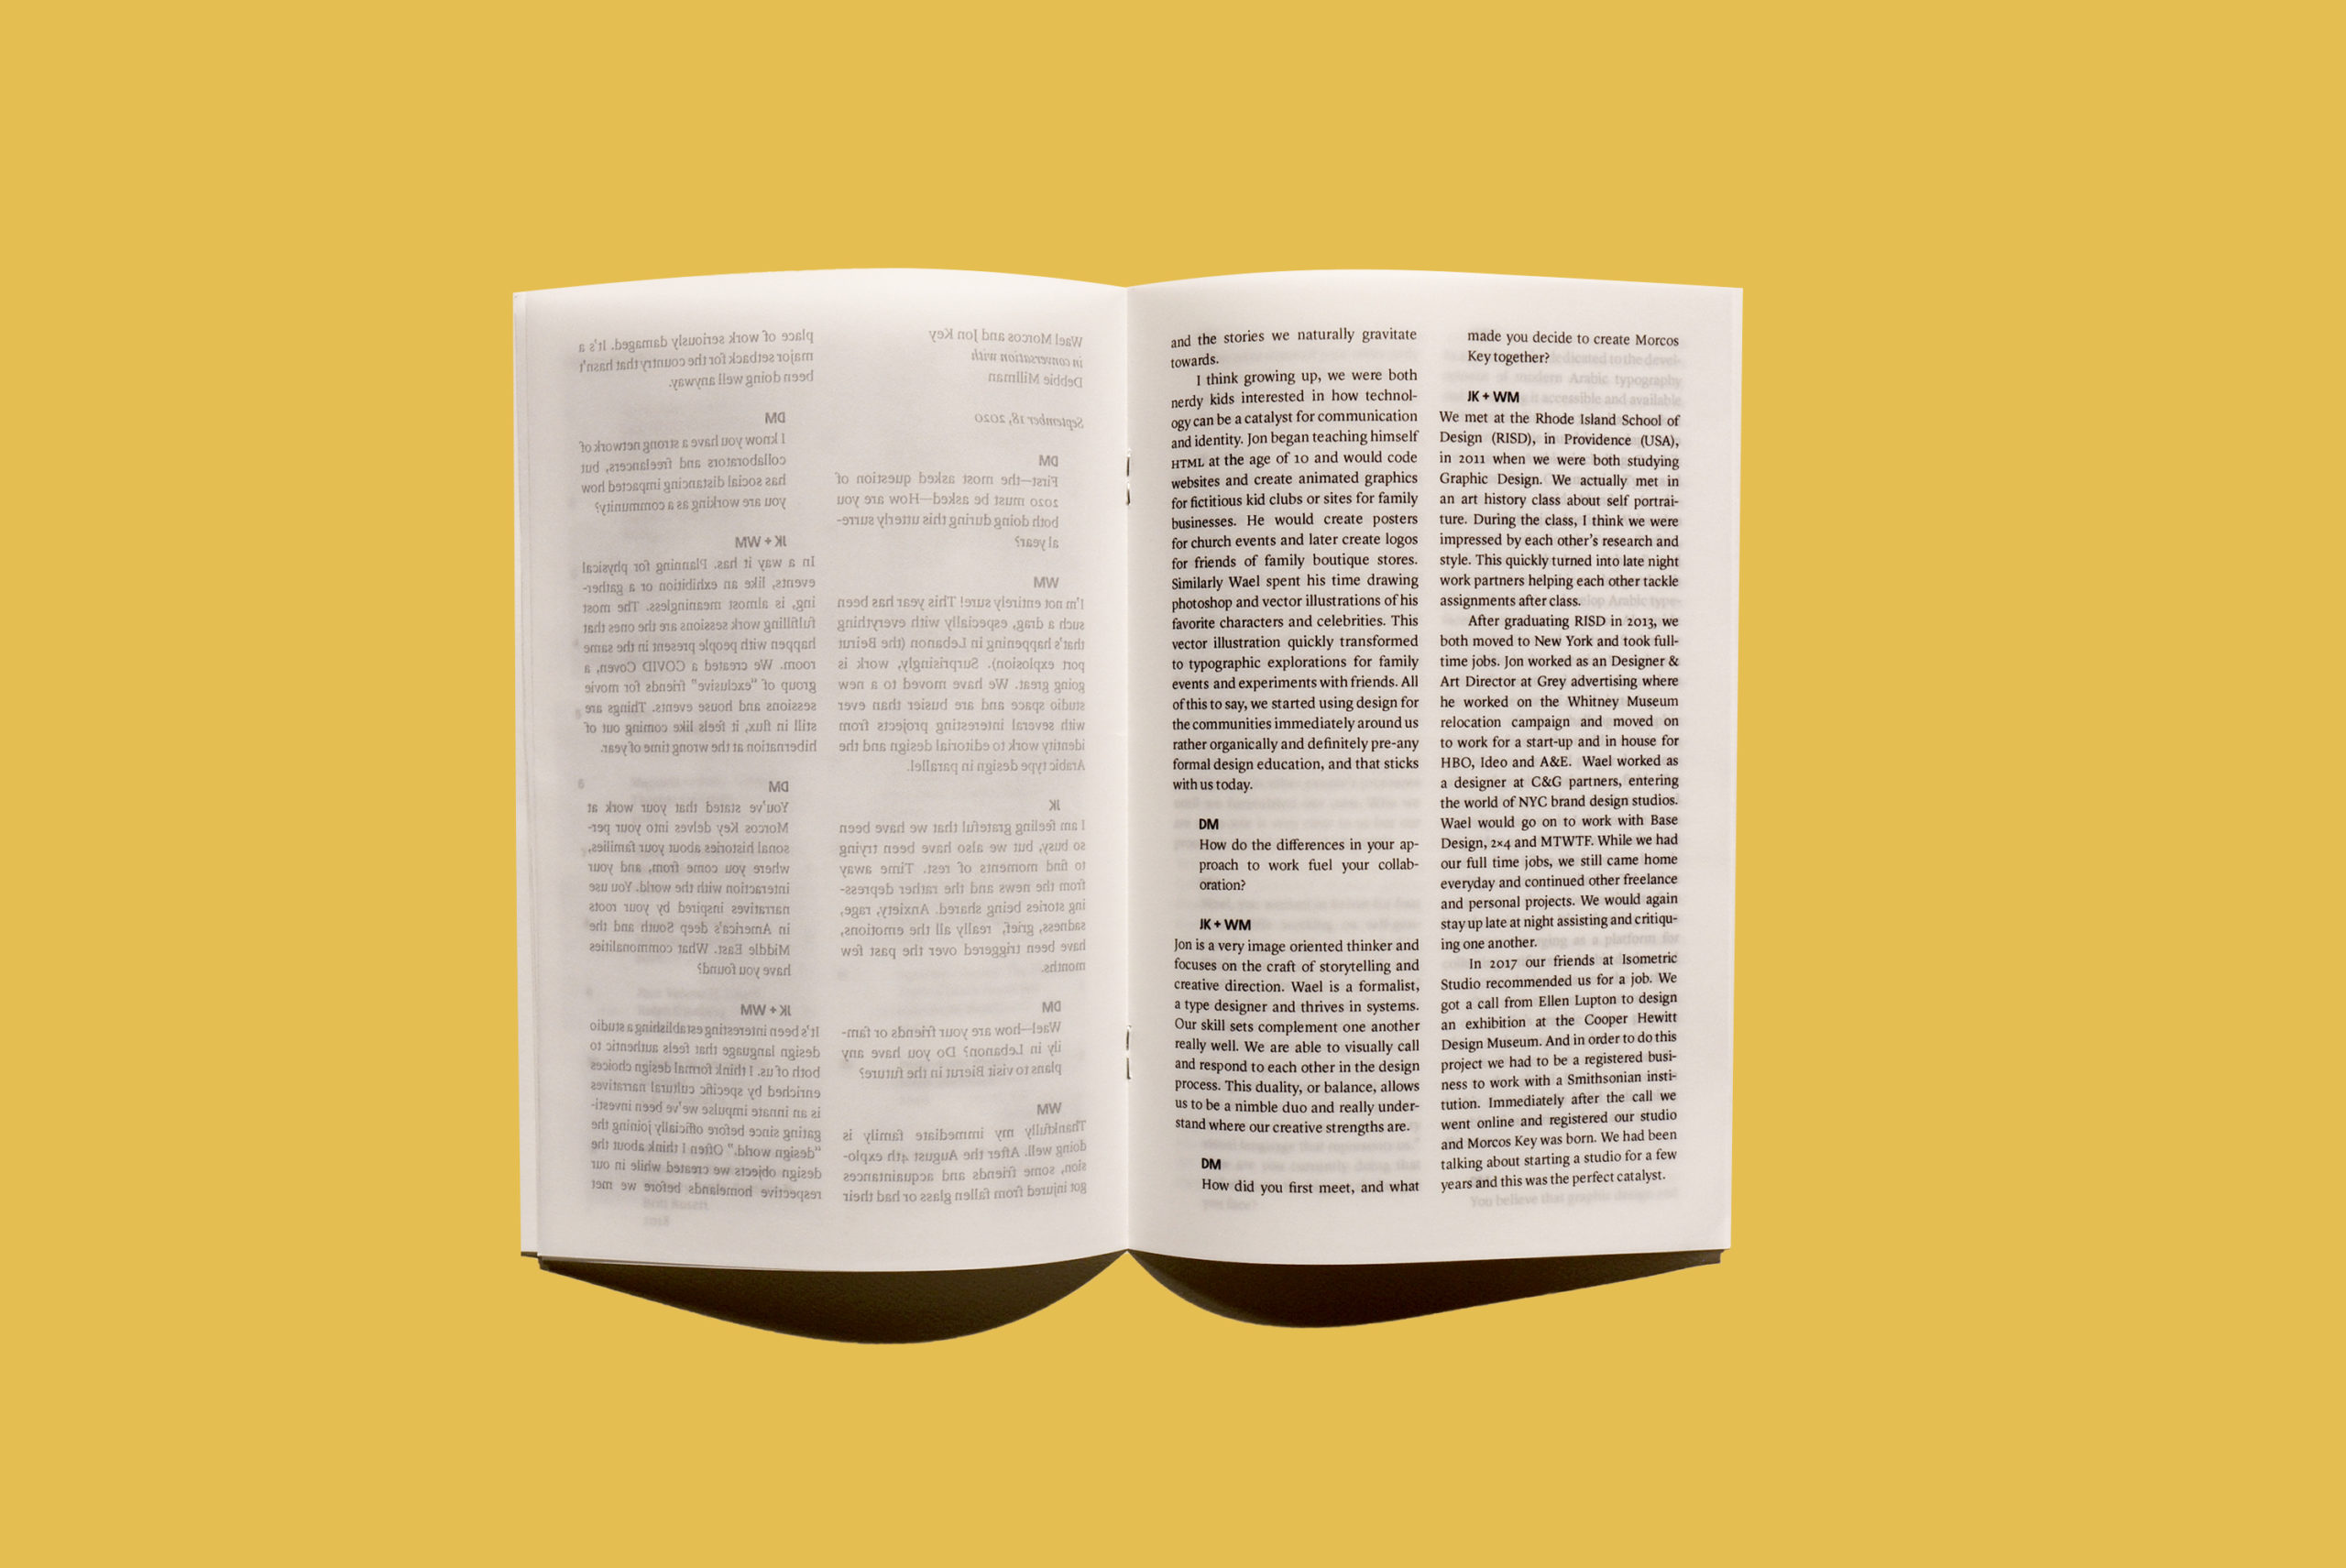 book with translucent pages and an interview